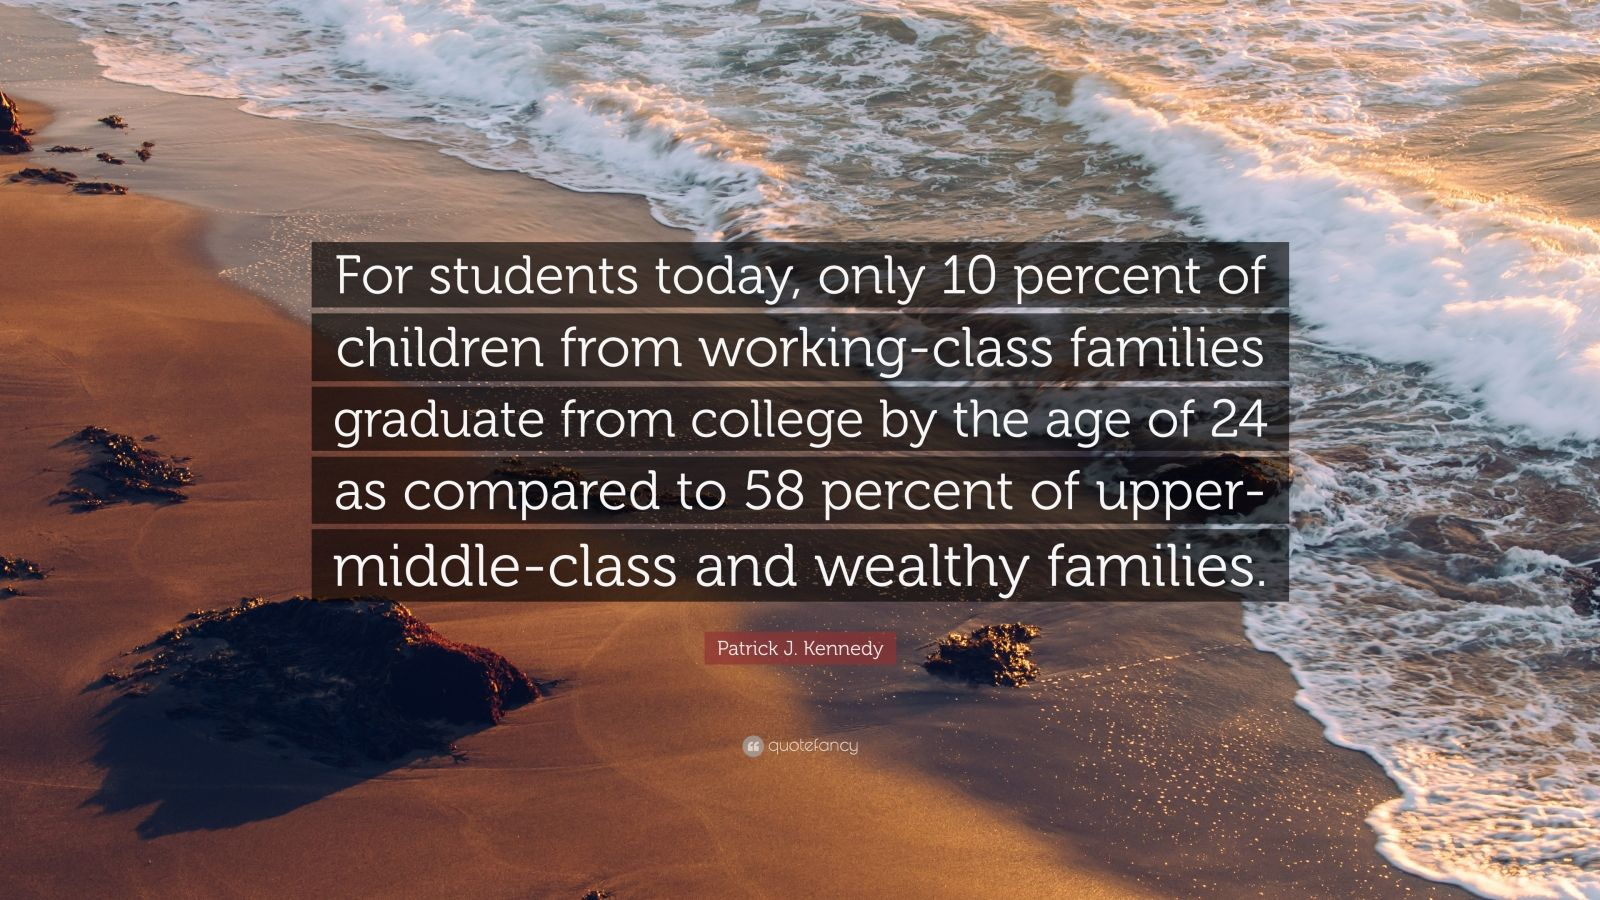 """Patrick J. Kennedy Quote: """"For students today, only 10 percent of children from working-class families graduate from college by the age of 24 as compared to 58 percent of upper-middle-class and wealthy families."""""""